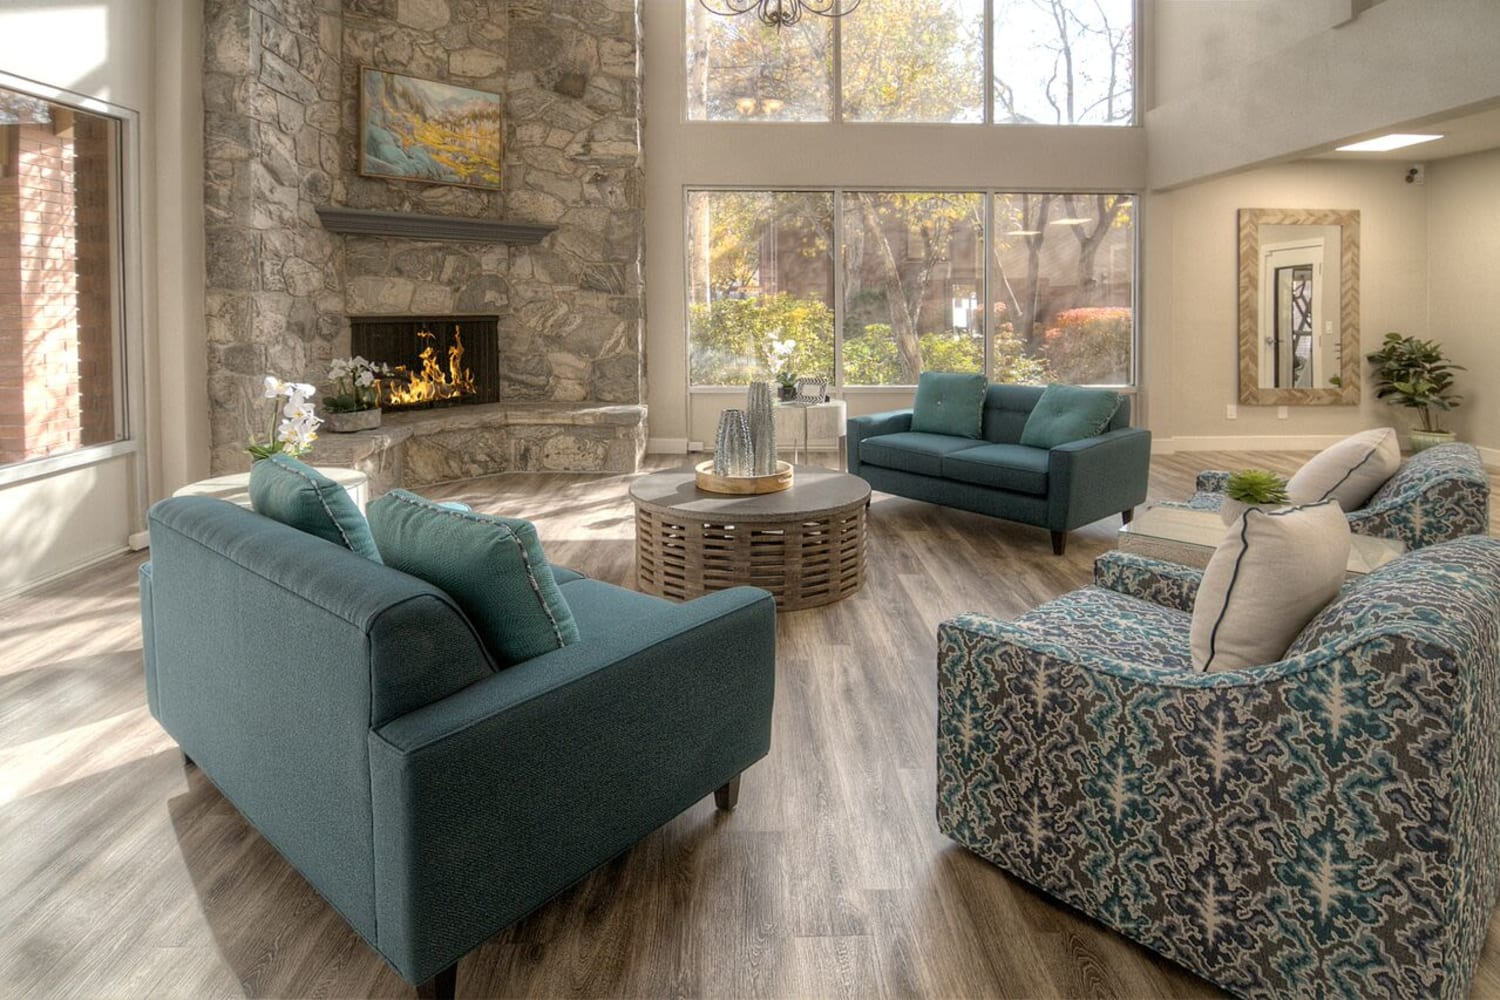 Enjoy a fireplace in the clubhouse at Wasatch Club Apartments in Midvale, Utah